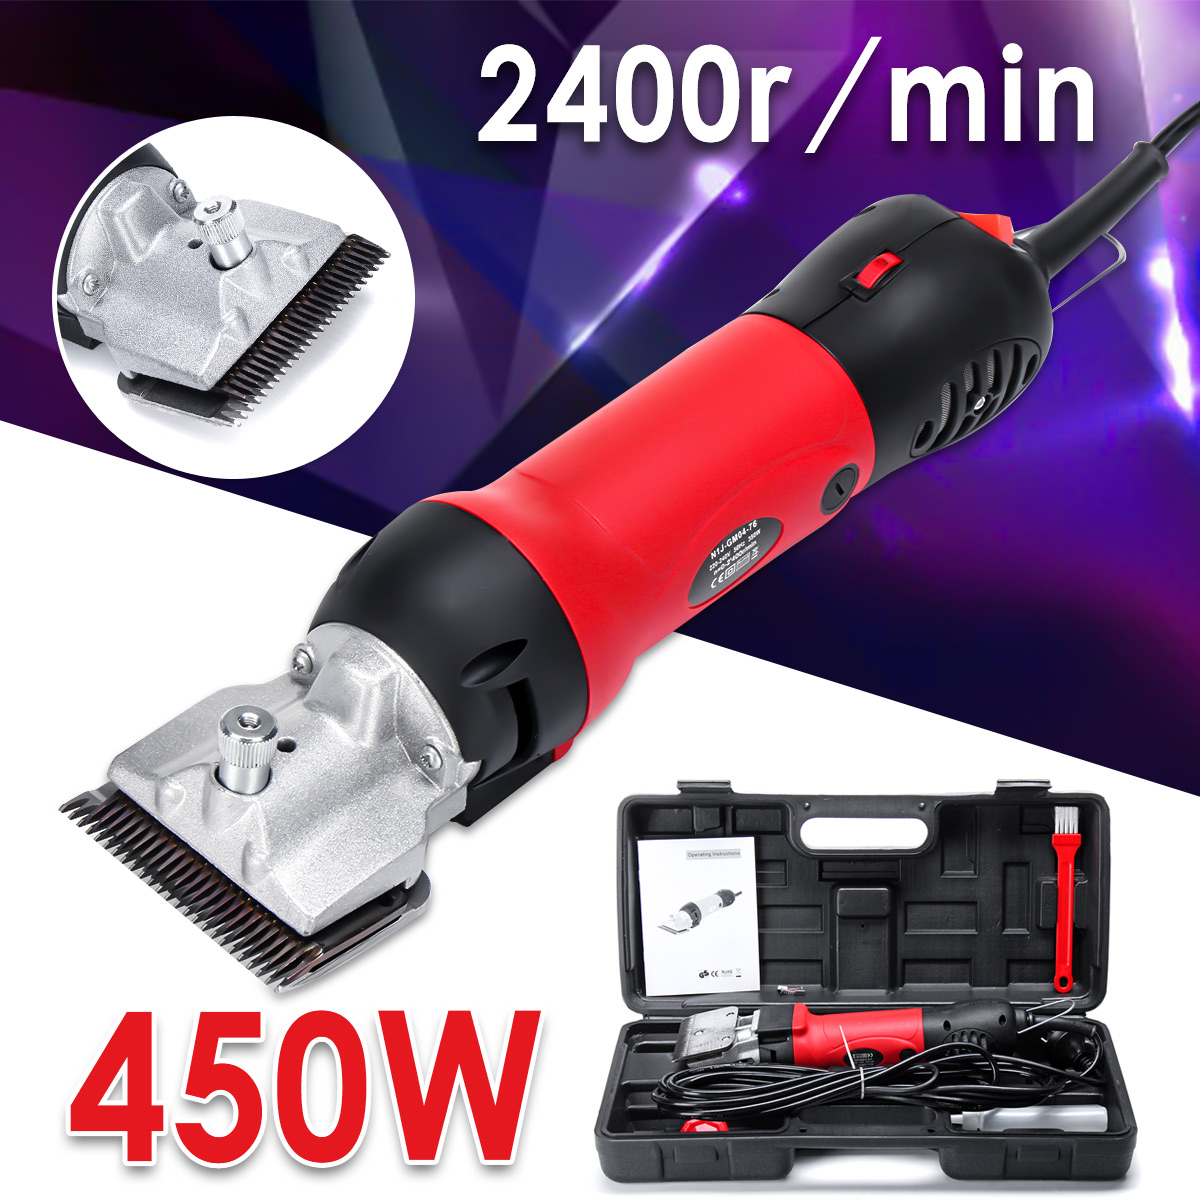 110-240V 450W 2400r/m Professional Electric Animal Horse Camel Dog Sheep Shearing Clipper Pet Hair Trimmer Hair Shearing Machine new 680w sheep wool clipper electric sheep goats shearing clipper shears 1 set 13 straight tooth blade comb